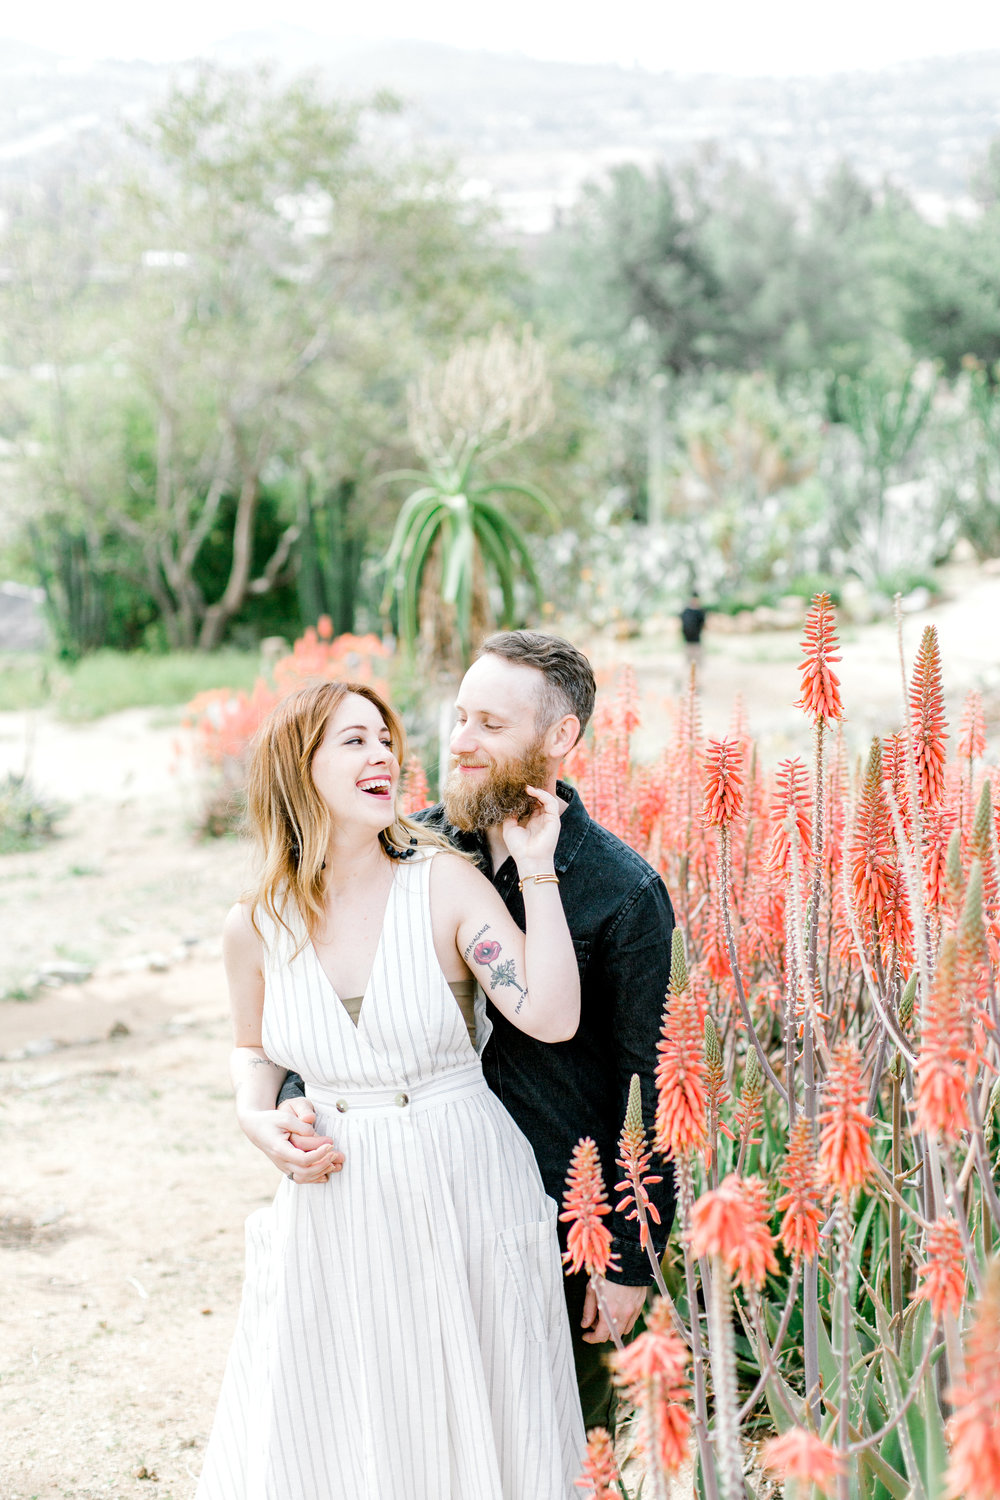 jessica sgubin photography atlanta portrait photographer cacti garden engagement family couple wedding joshua tree wedding elopement-18.jpg